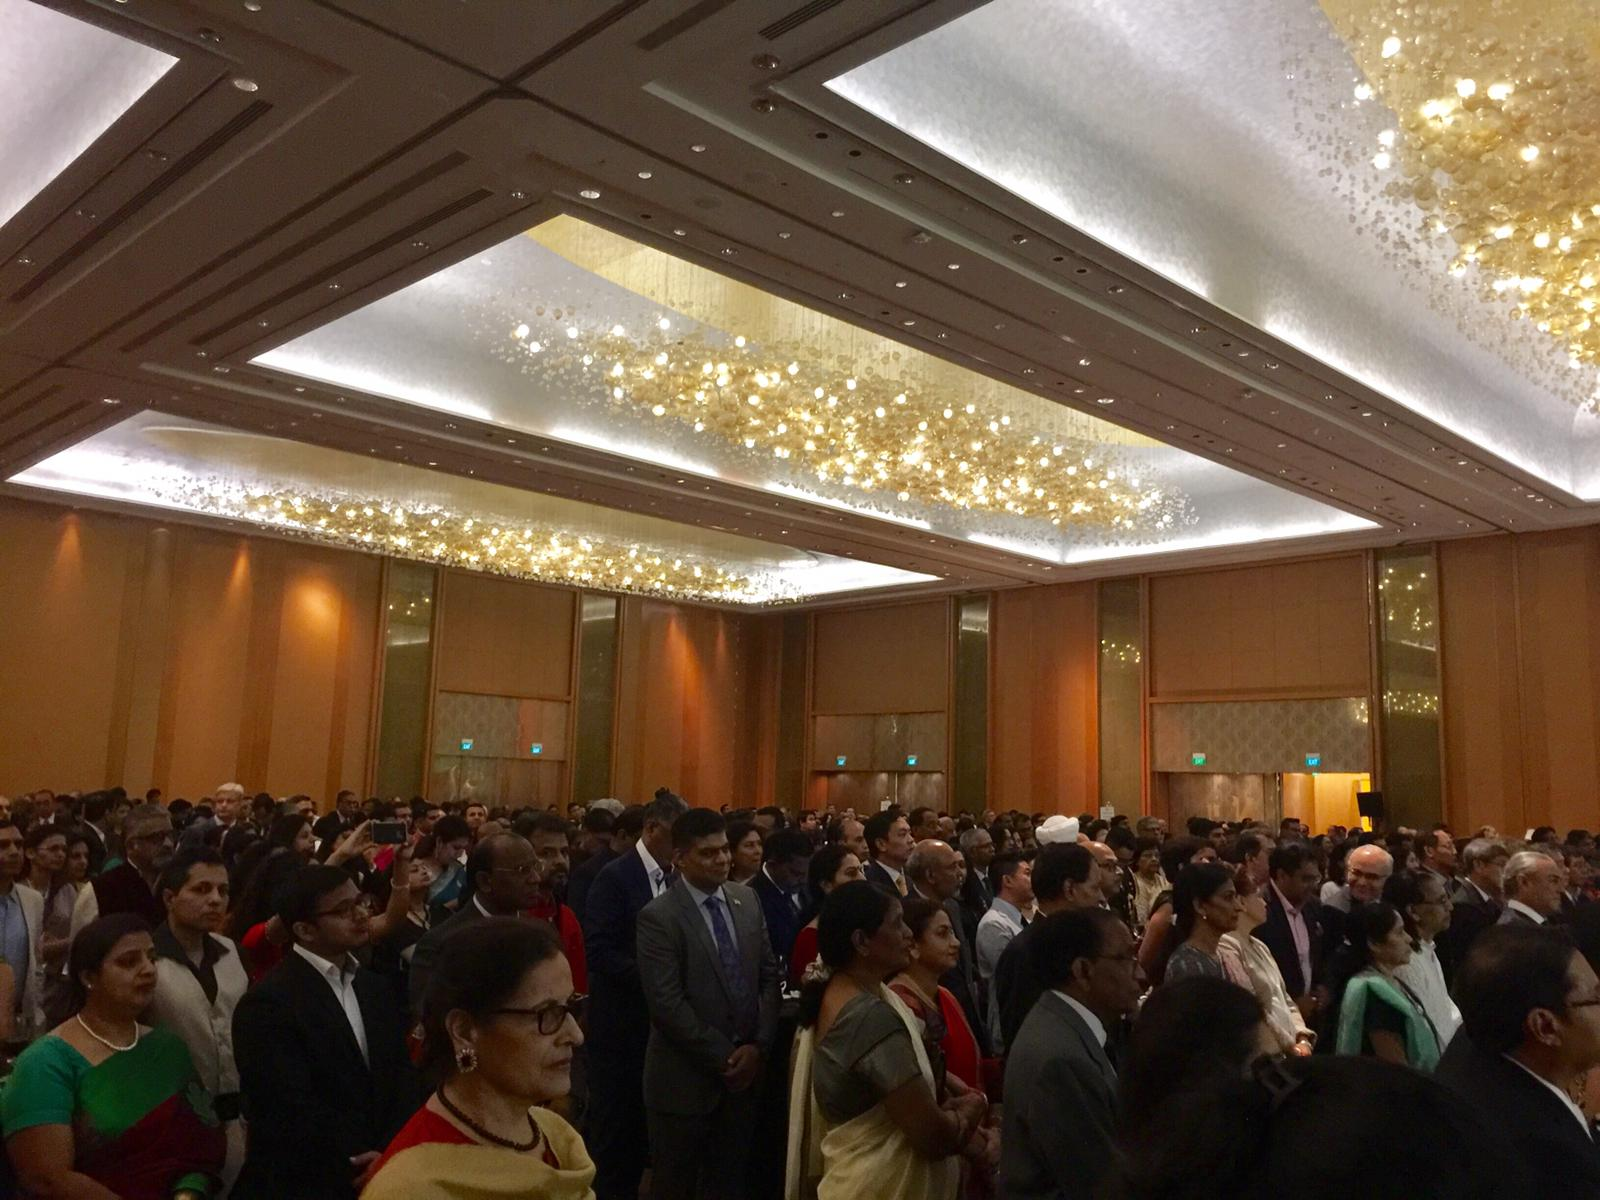 Members of Indian diaspora and Singaporeans attending the grand celebrations of India's 70th Republic Day at the Marina Bay Sands hotel. Photo: Connected to India